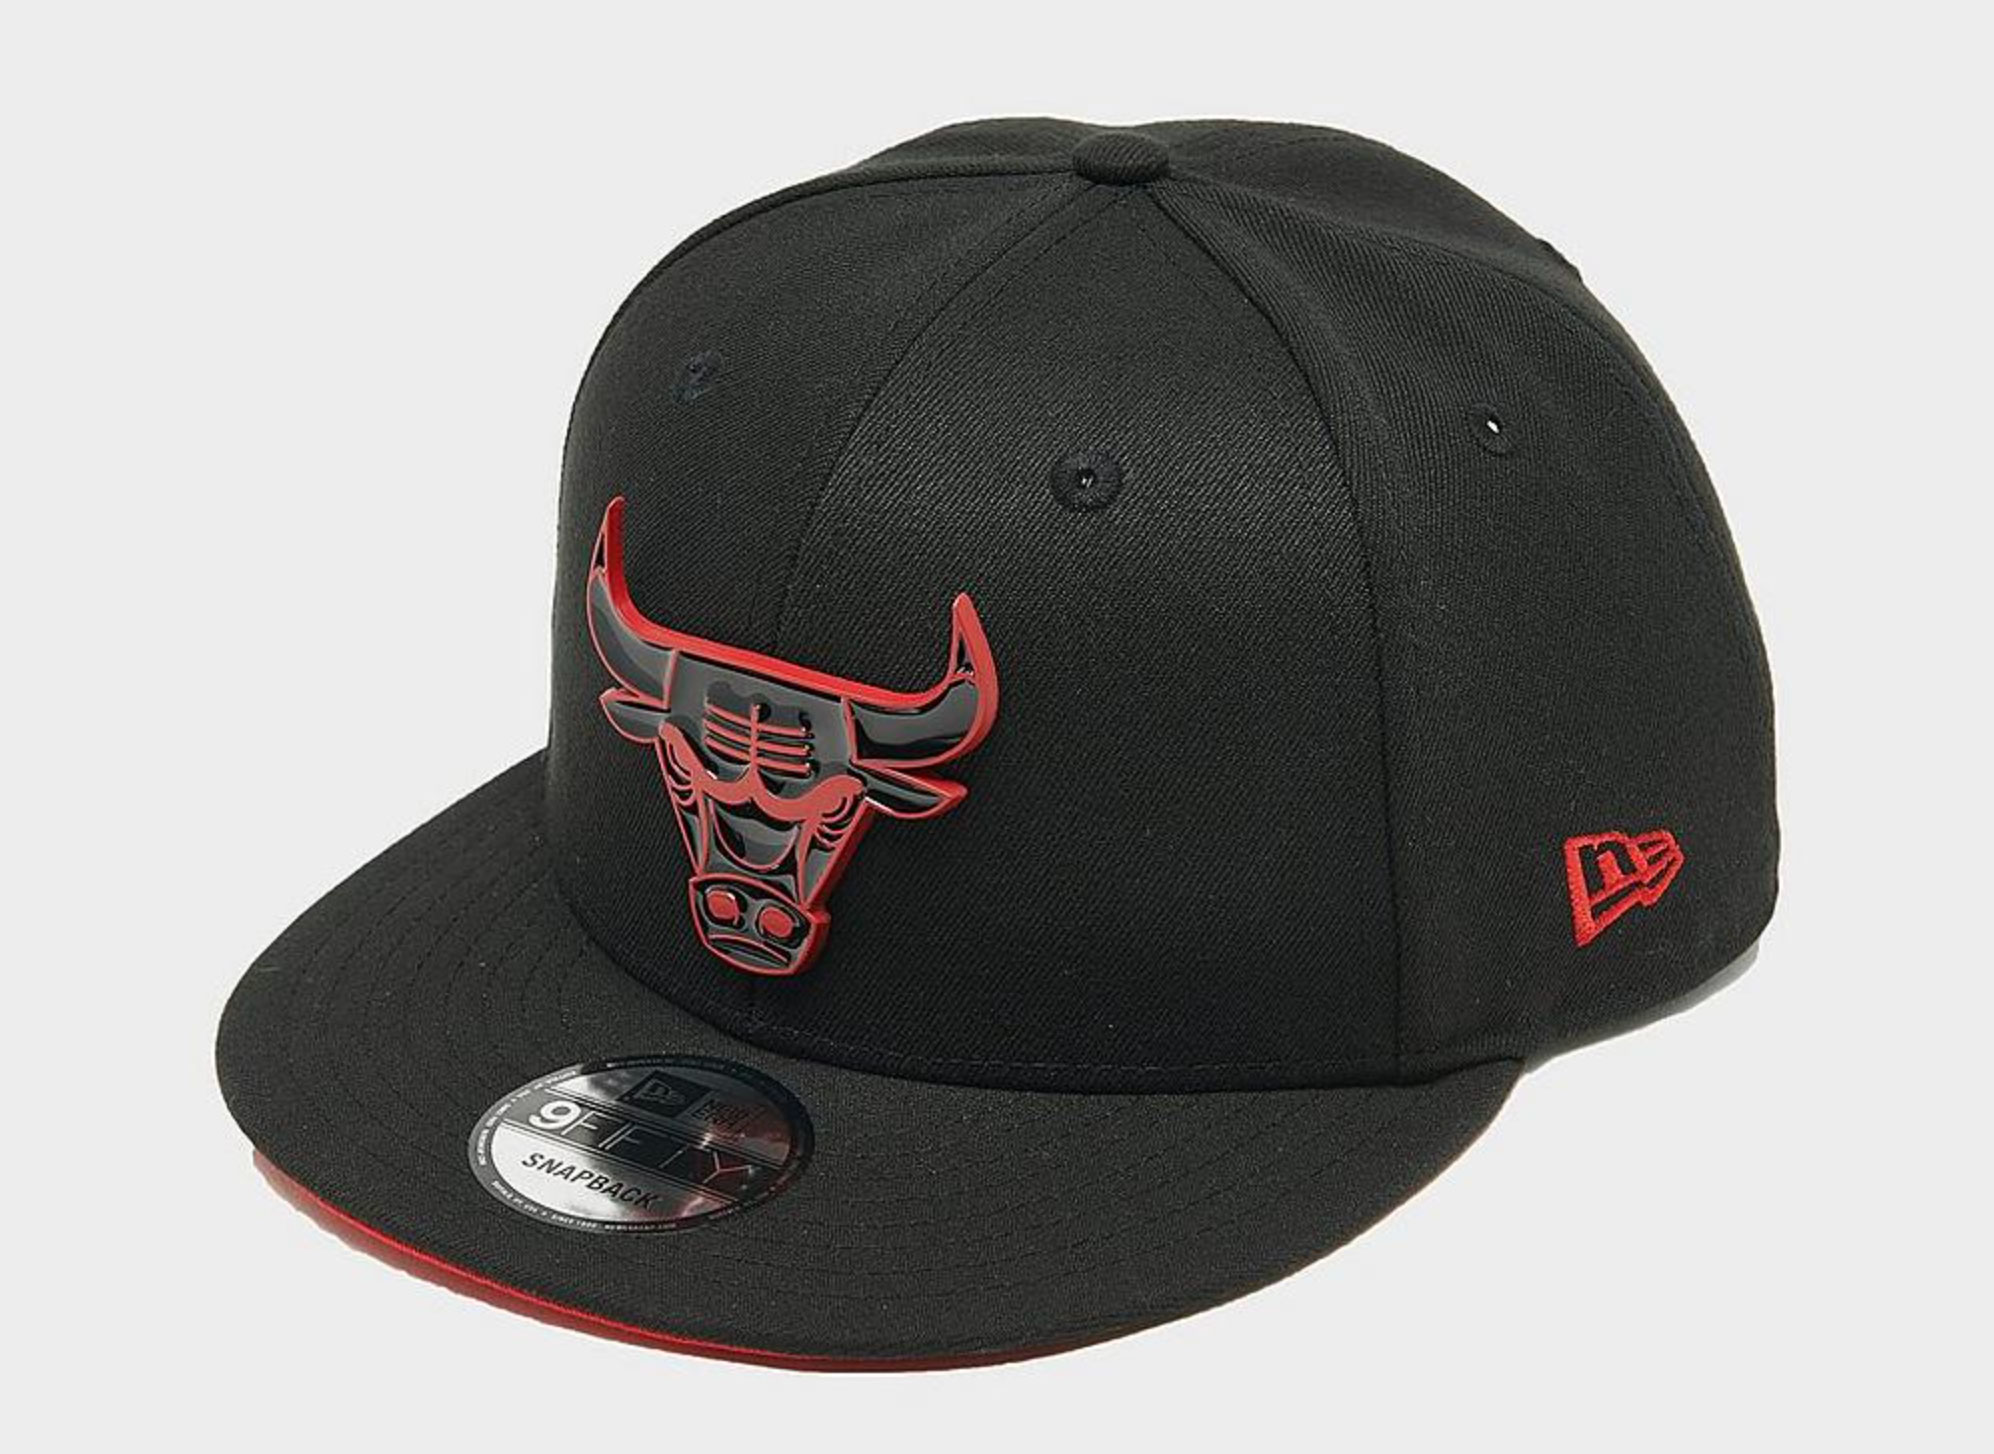 jordan-12-reverse-flu-game-new-era-chicago-bulls-bred-hat-4